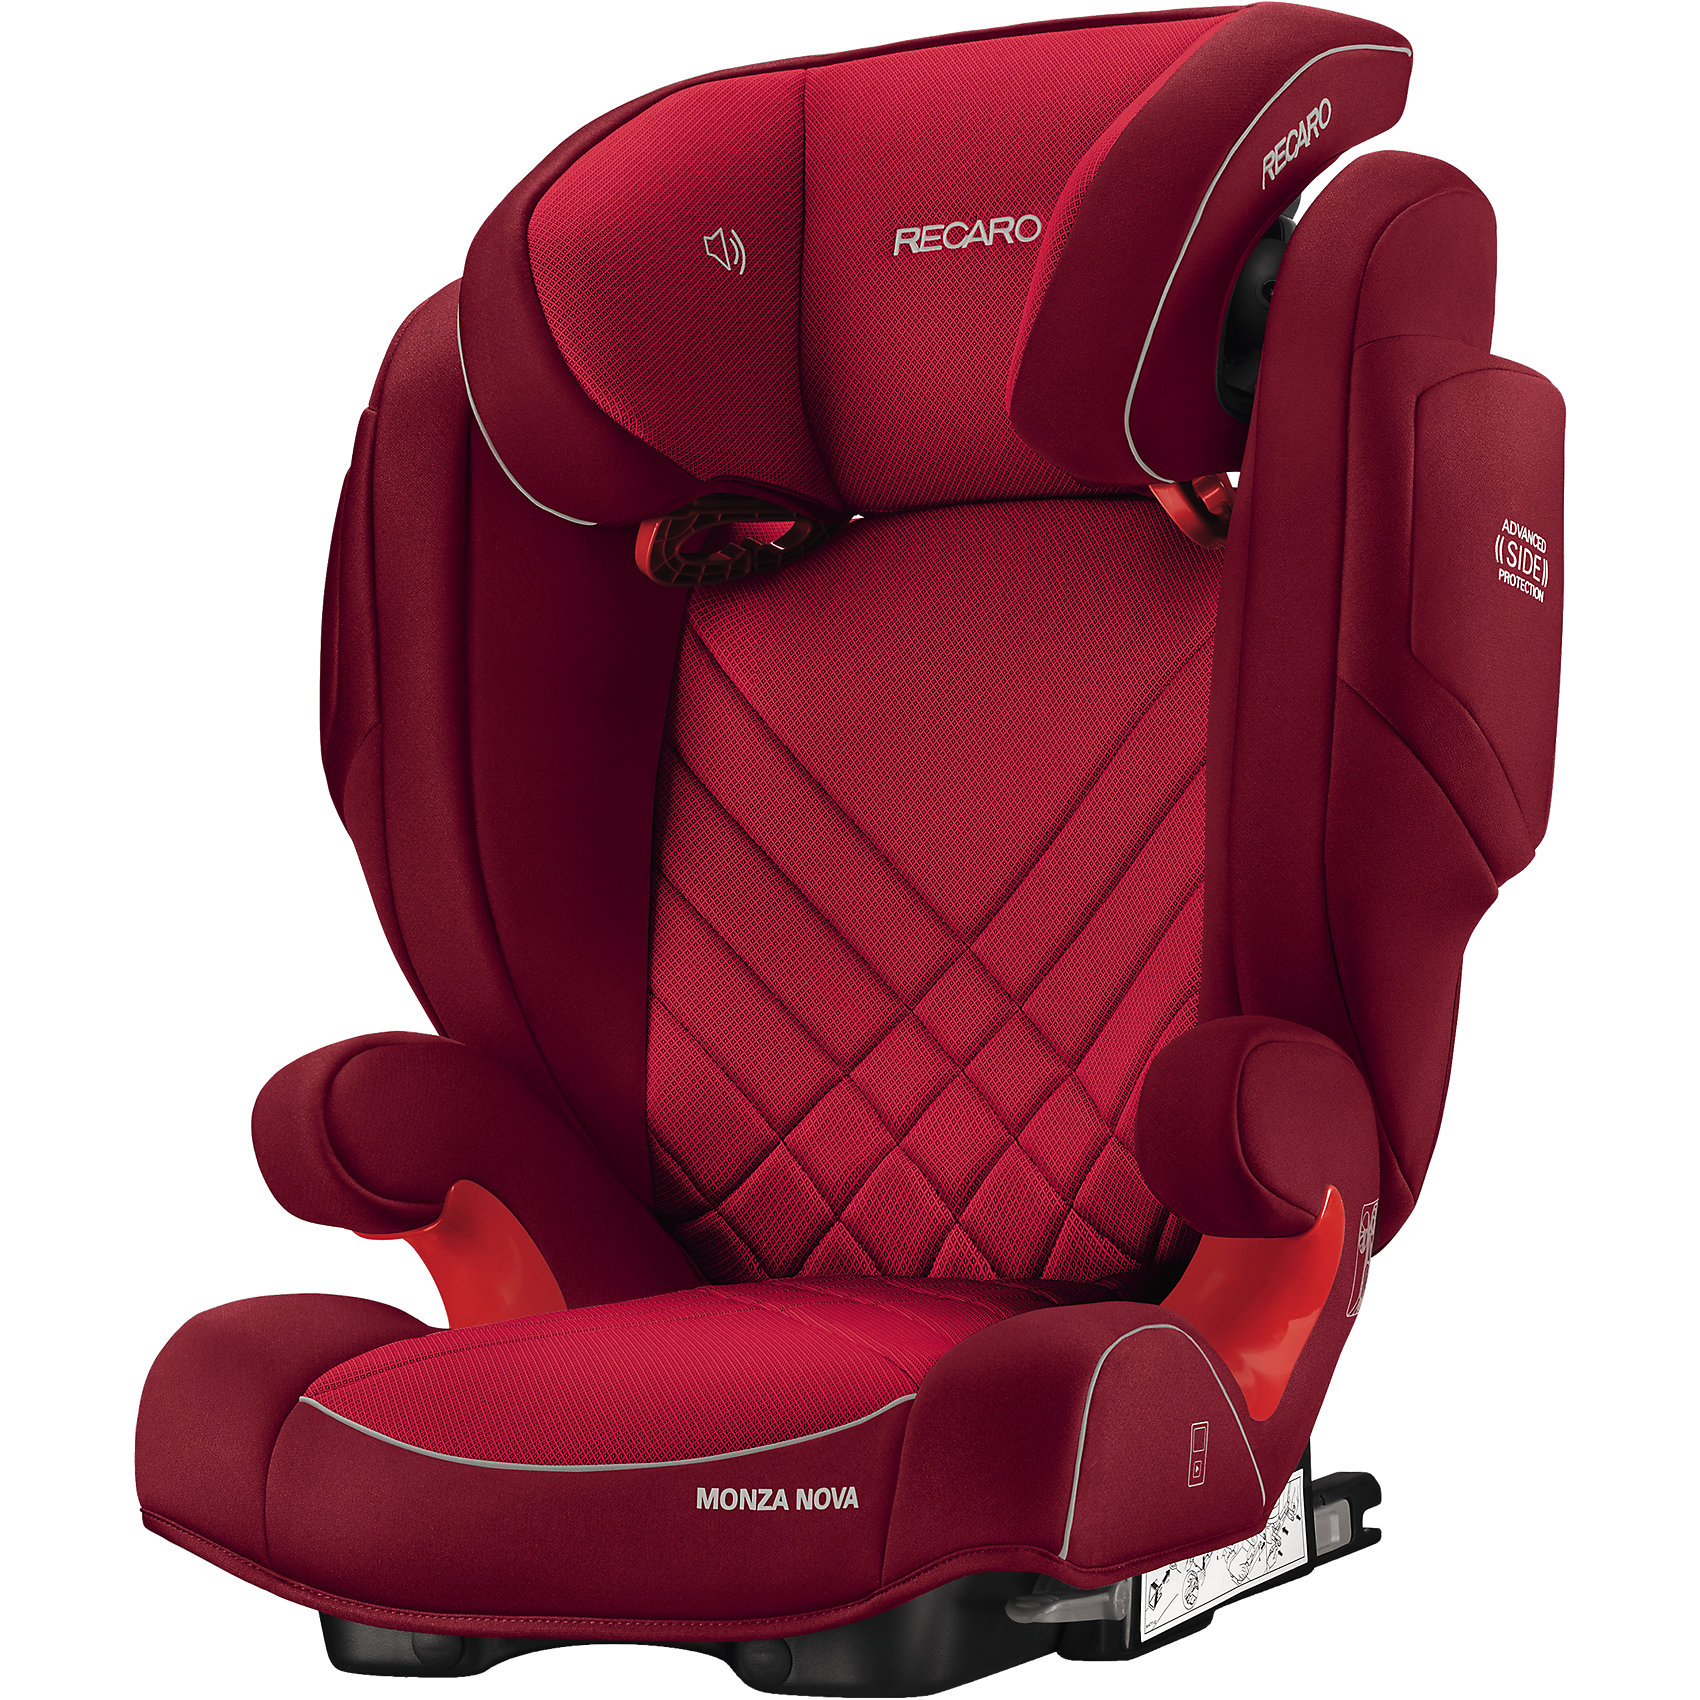 Автокресло Monza Nova 2 SF,  15-36 кг, Recaro, indy red